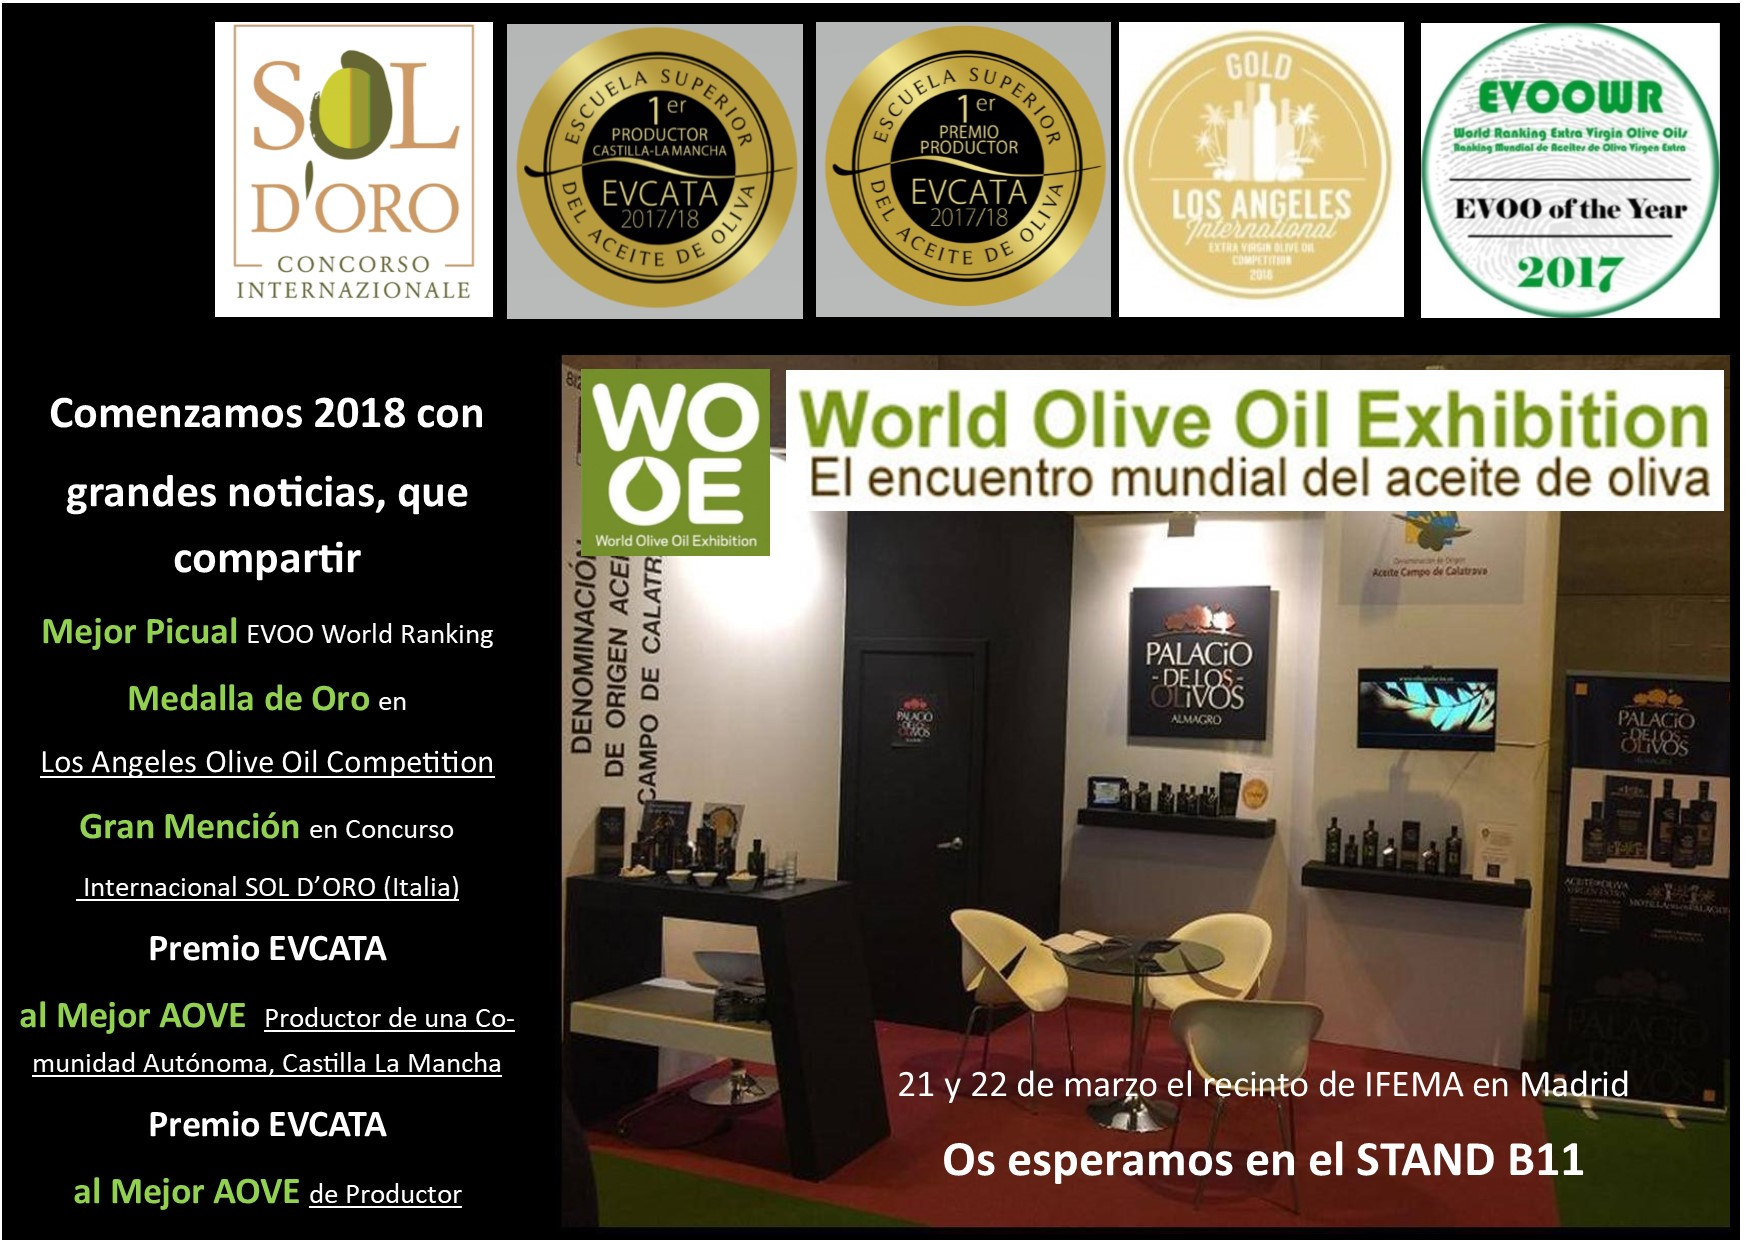 World Olive Oil Exhibition 2018 – stand B11